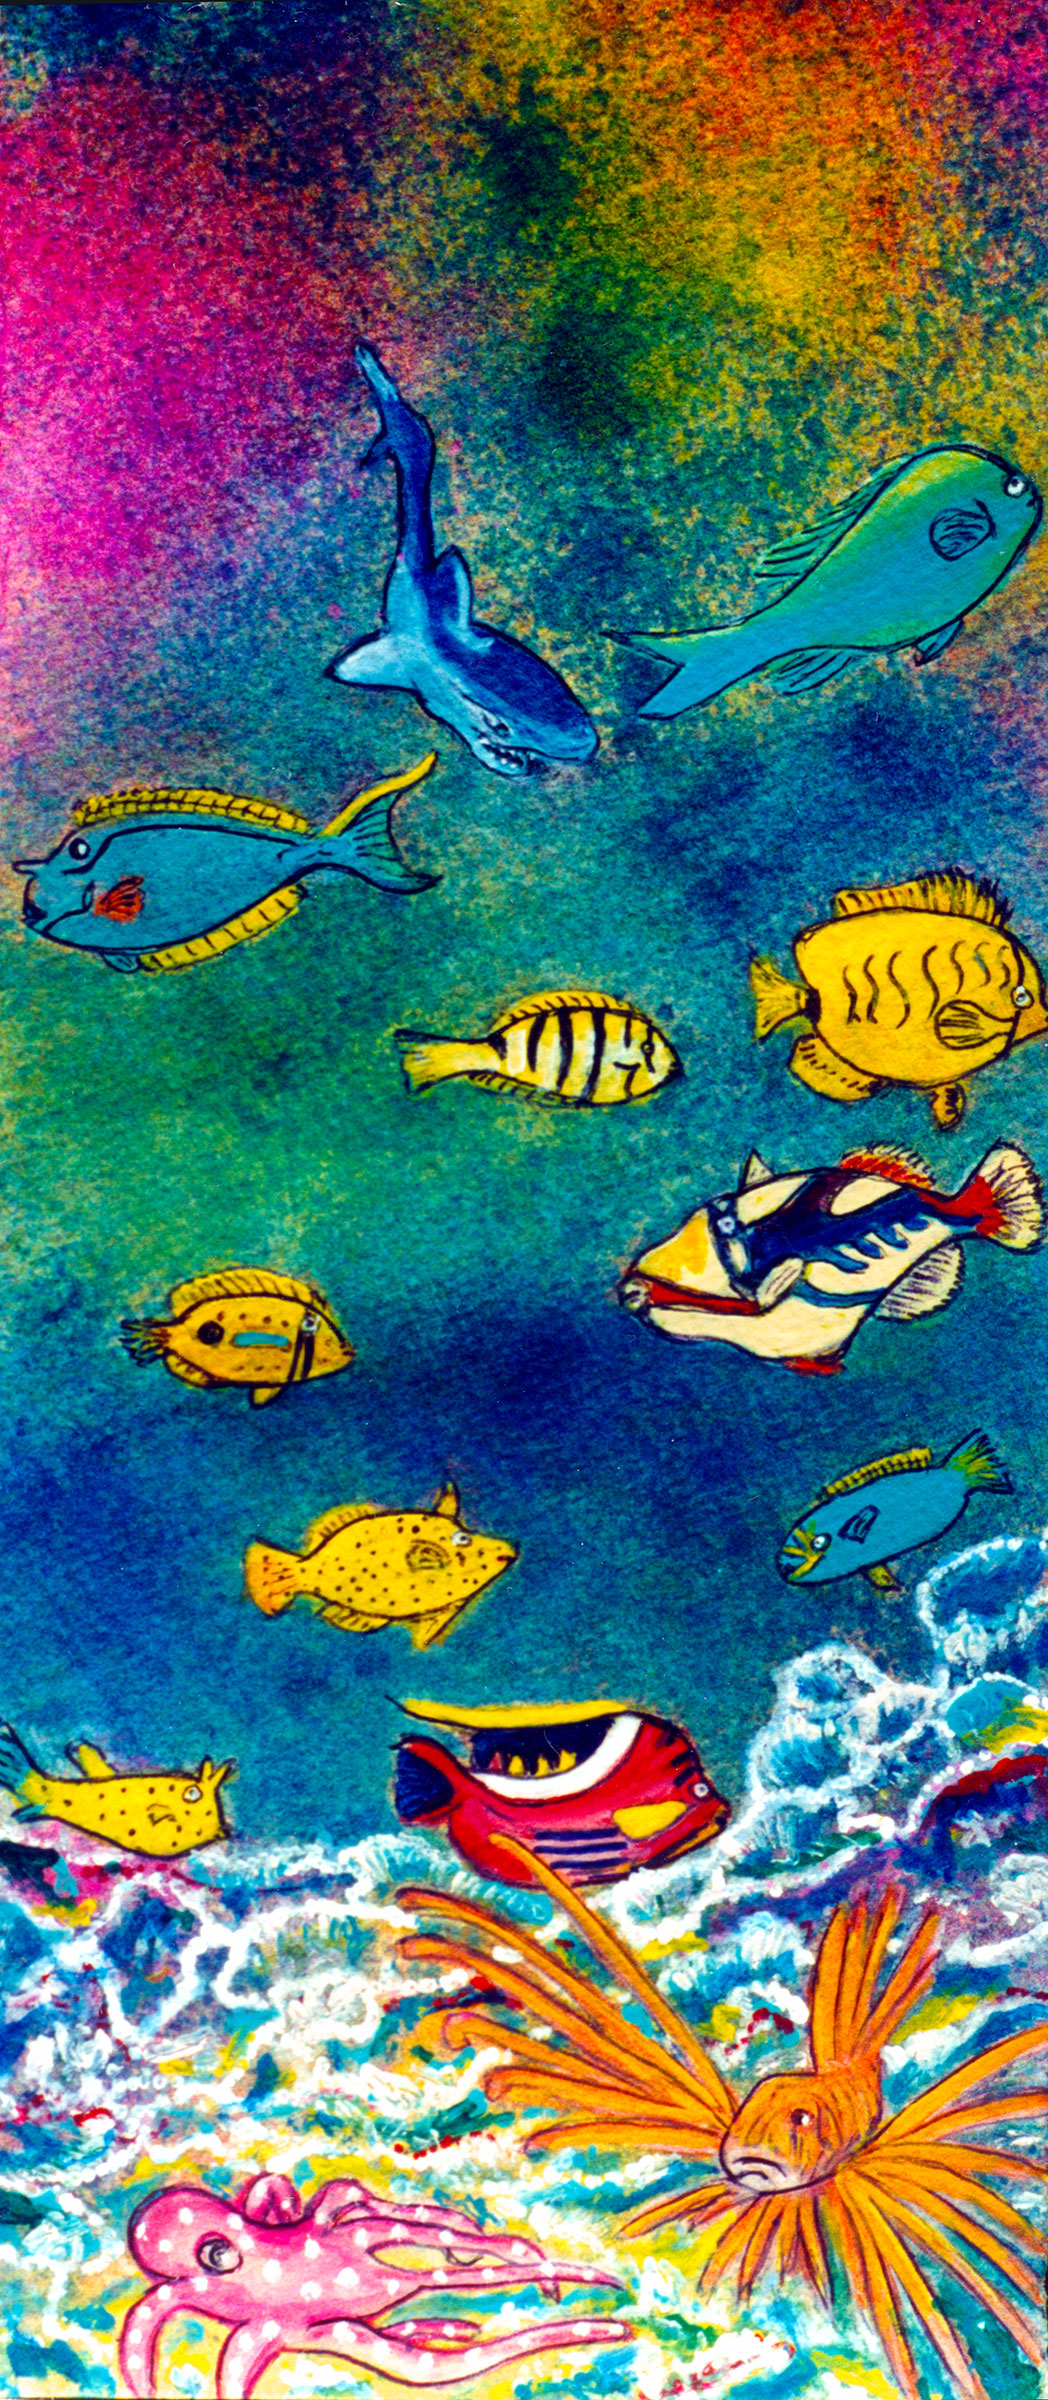 Marine Life, Hawaiian Reef, by Hhawaii Artist Donald K. Hall Gallery of fine Hawaiian Art. #223